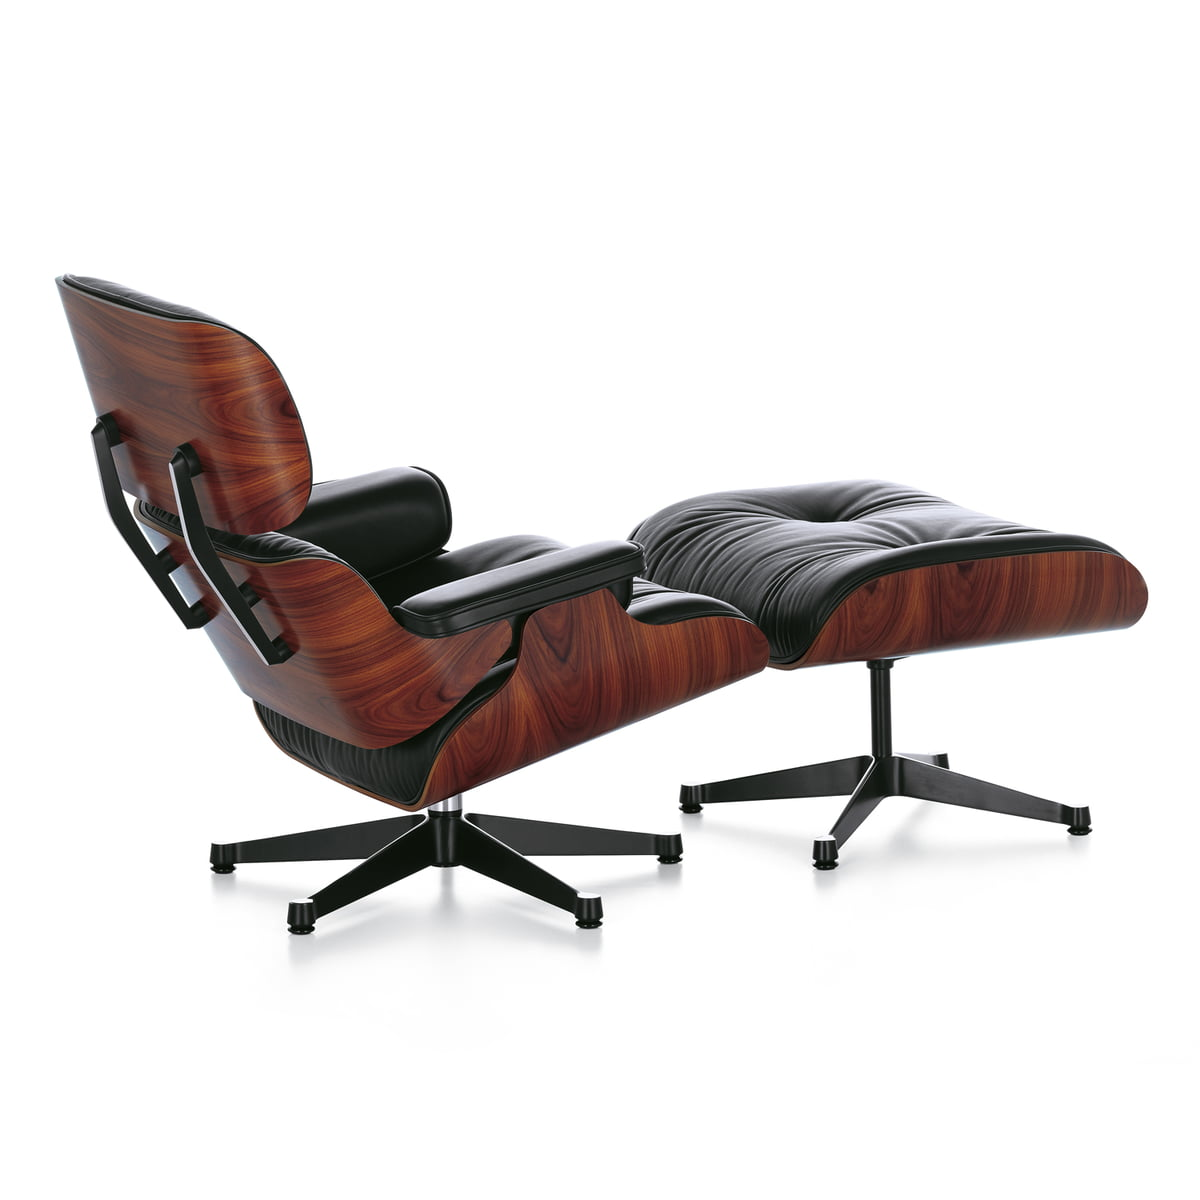 Incredible Vitra Lounge Chair Ottoman Polished Sides Black Rosewood Classic Creativecarmelina Interior Chair Design Creativecarmelinacom